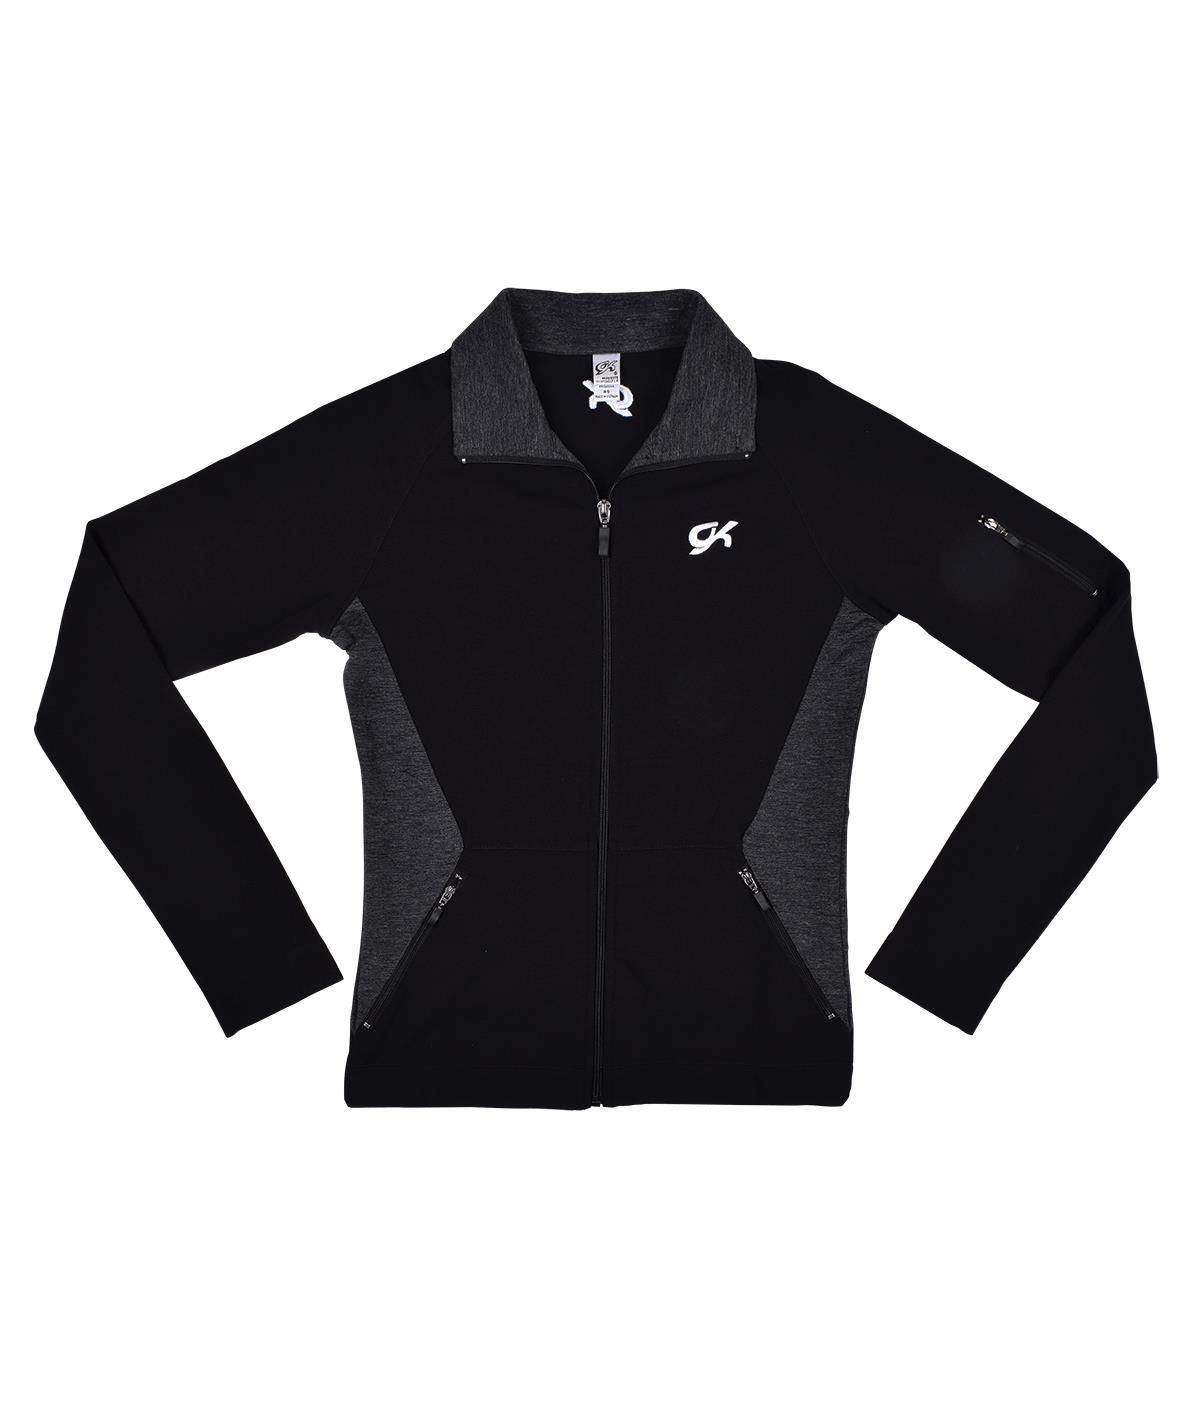 GK Balance Fitted Warmup Jacket